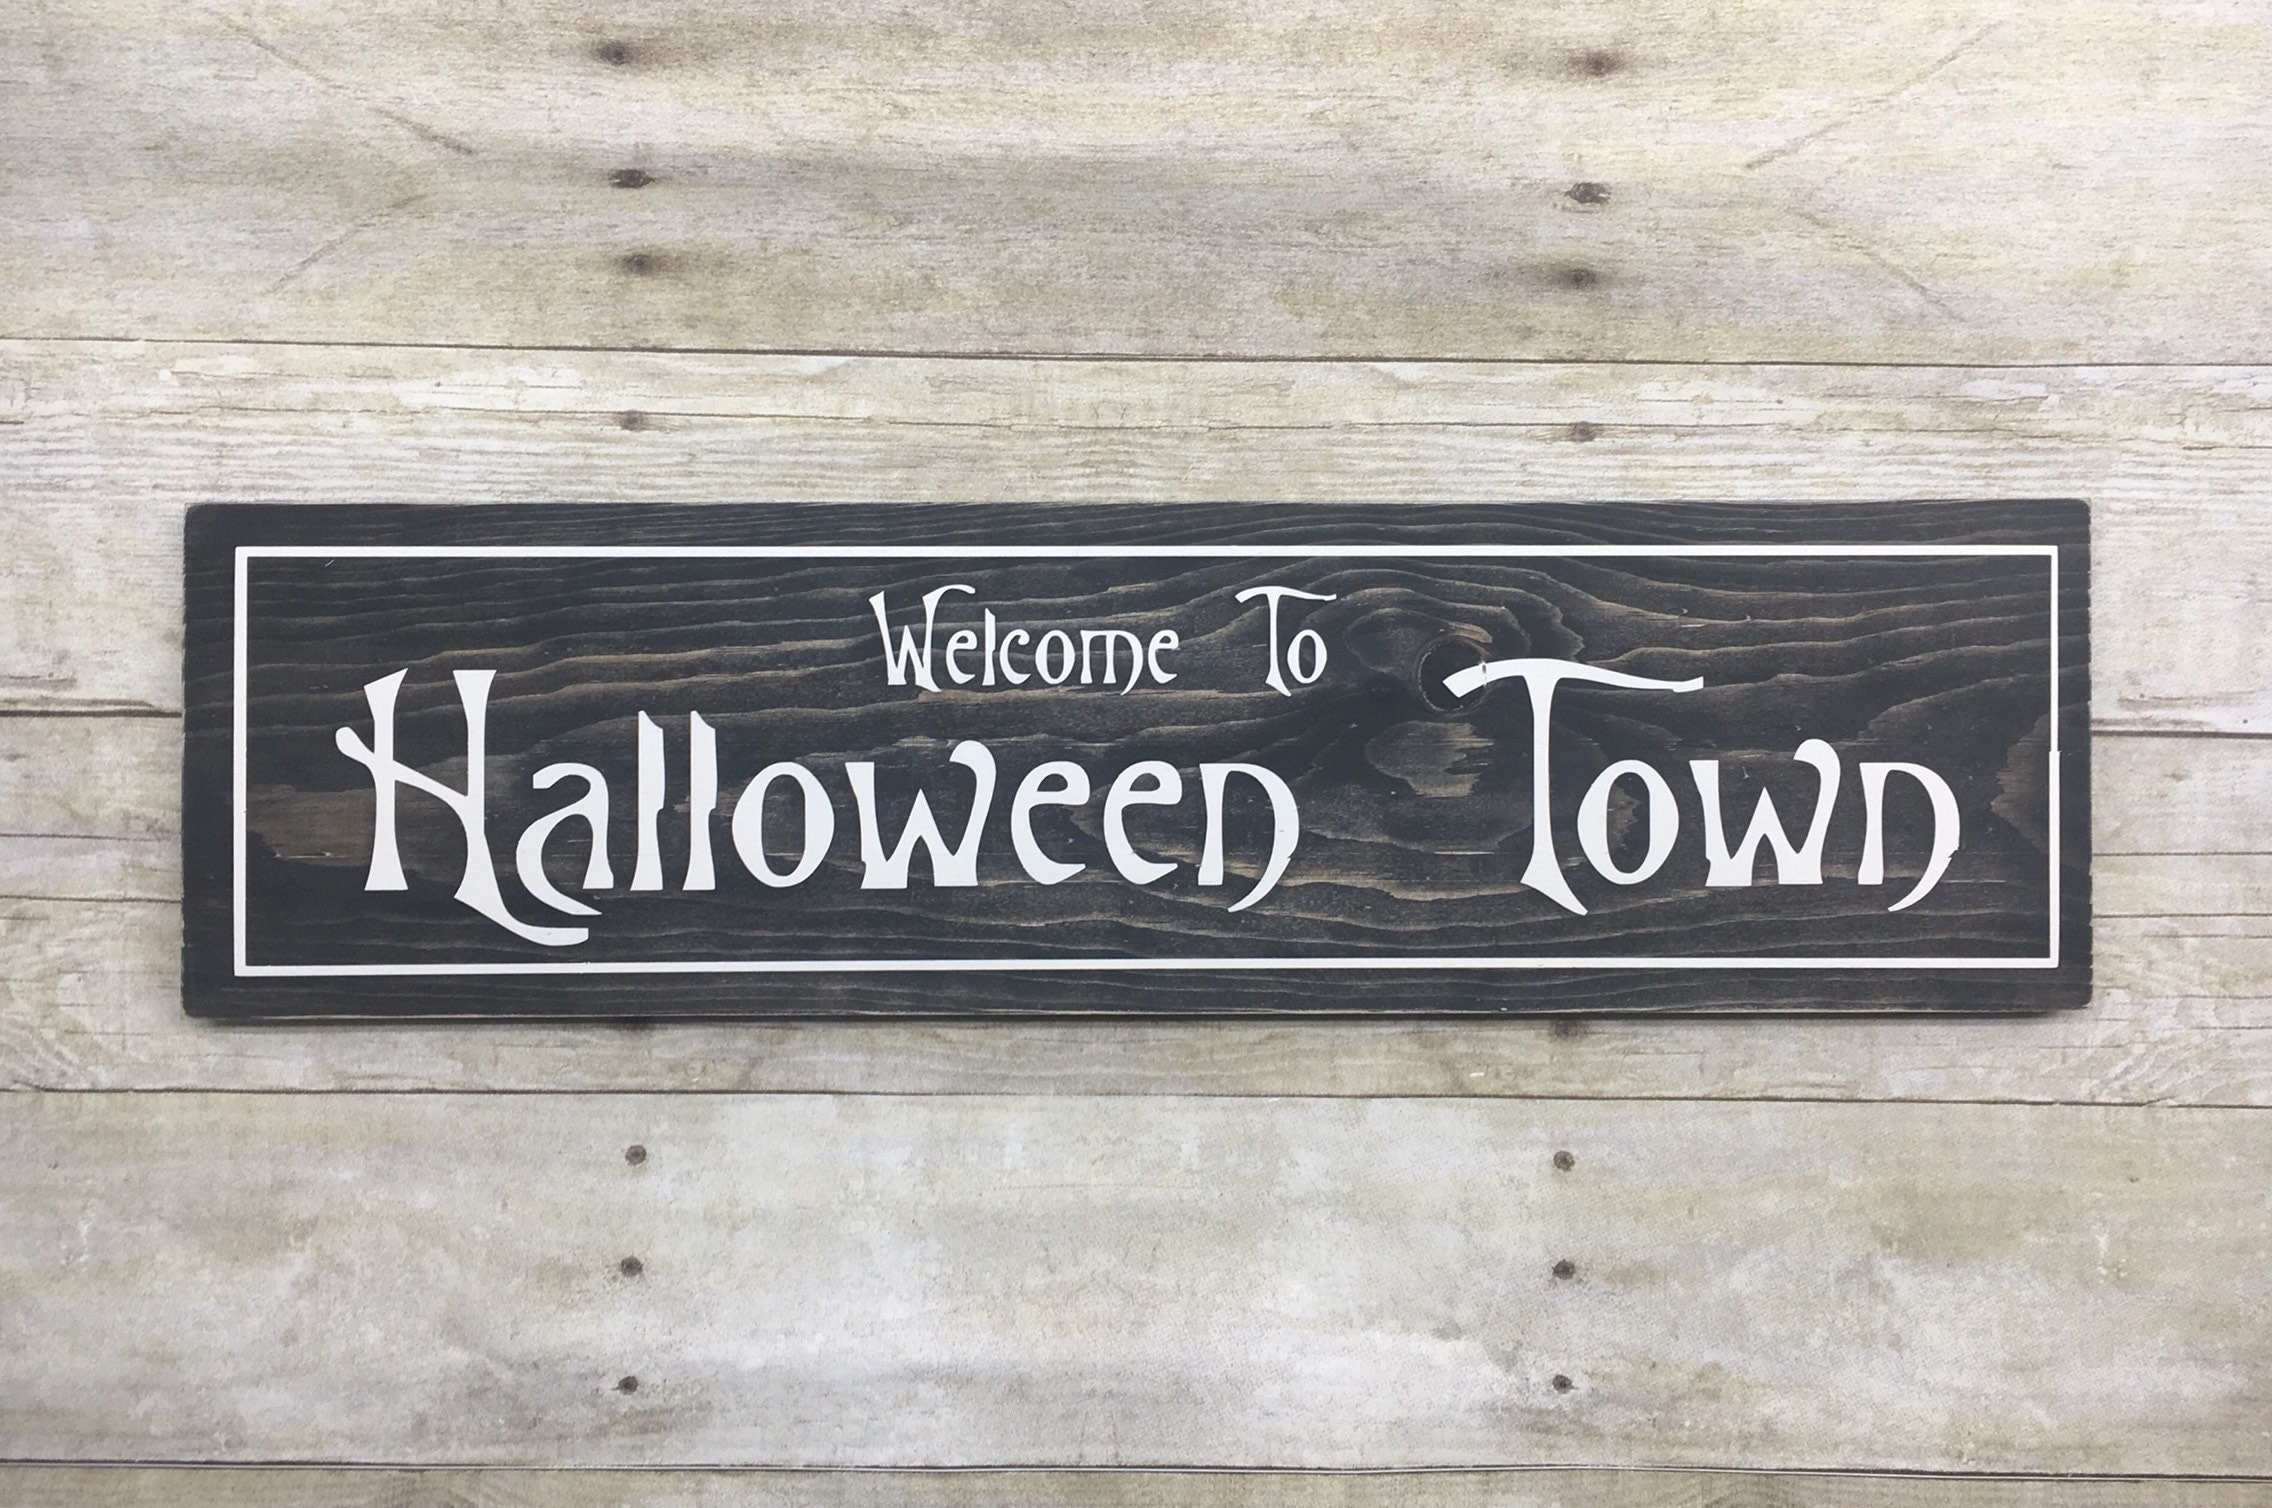 Halloween Town Wood Sign Nightmare Before Christmas Decor | Etsy